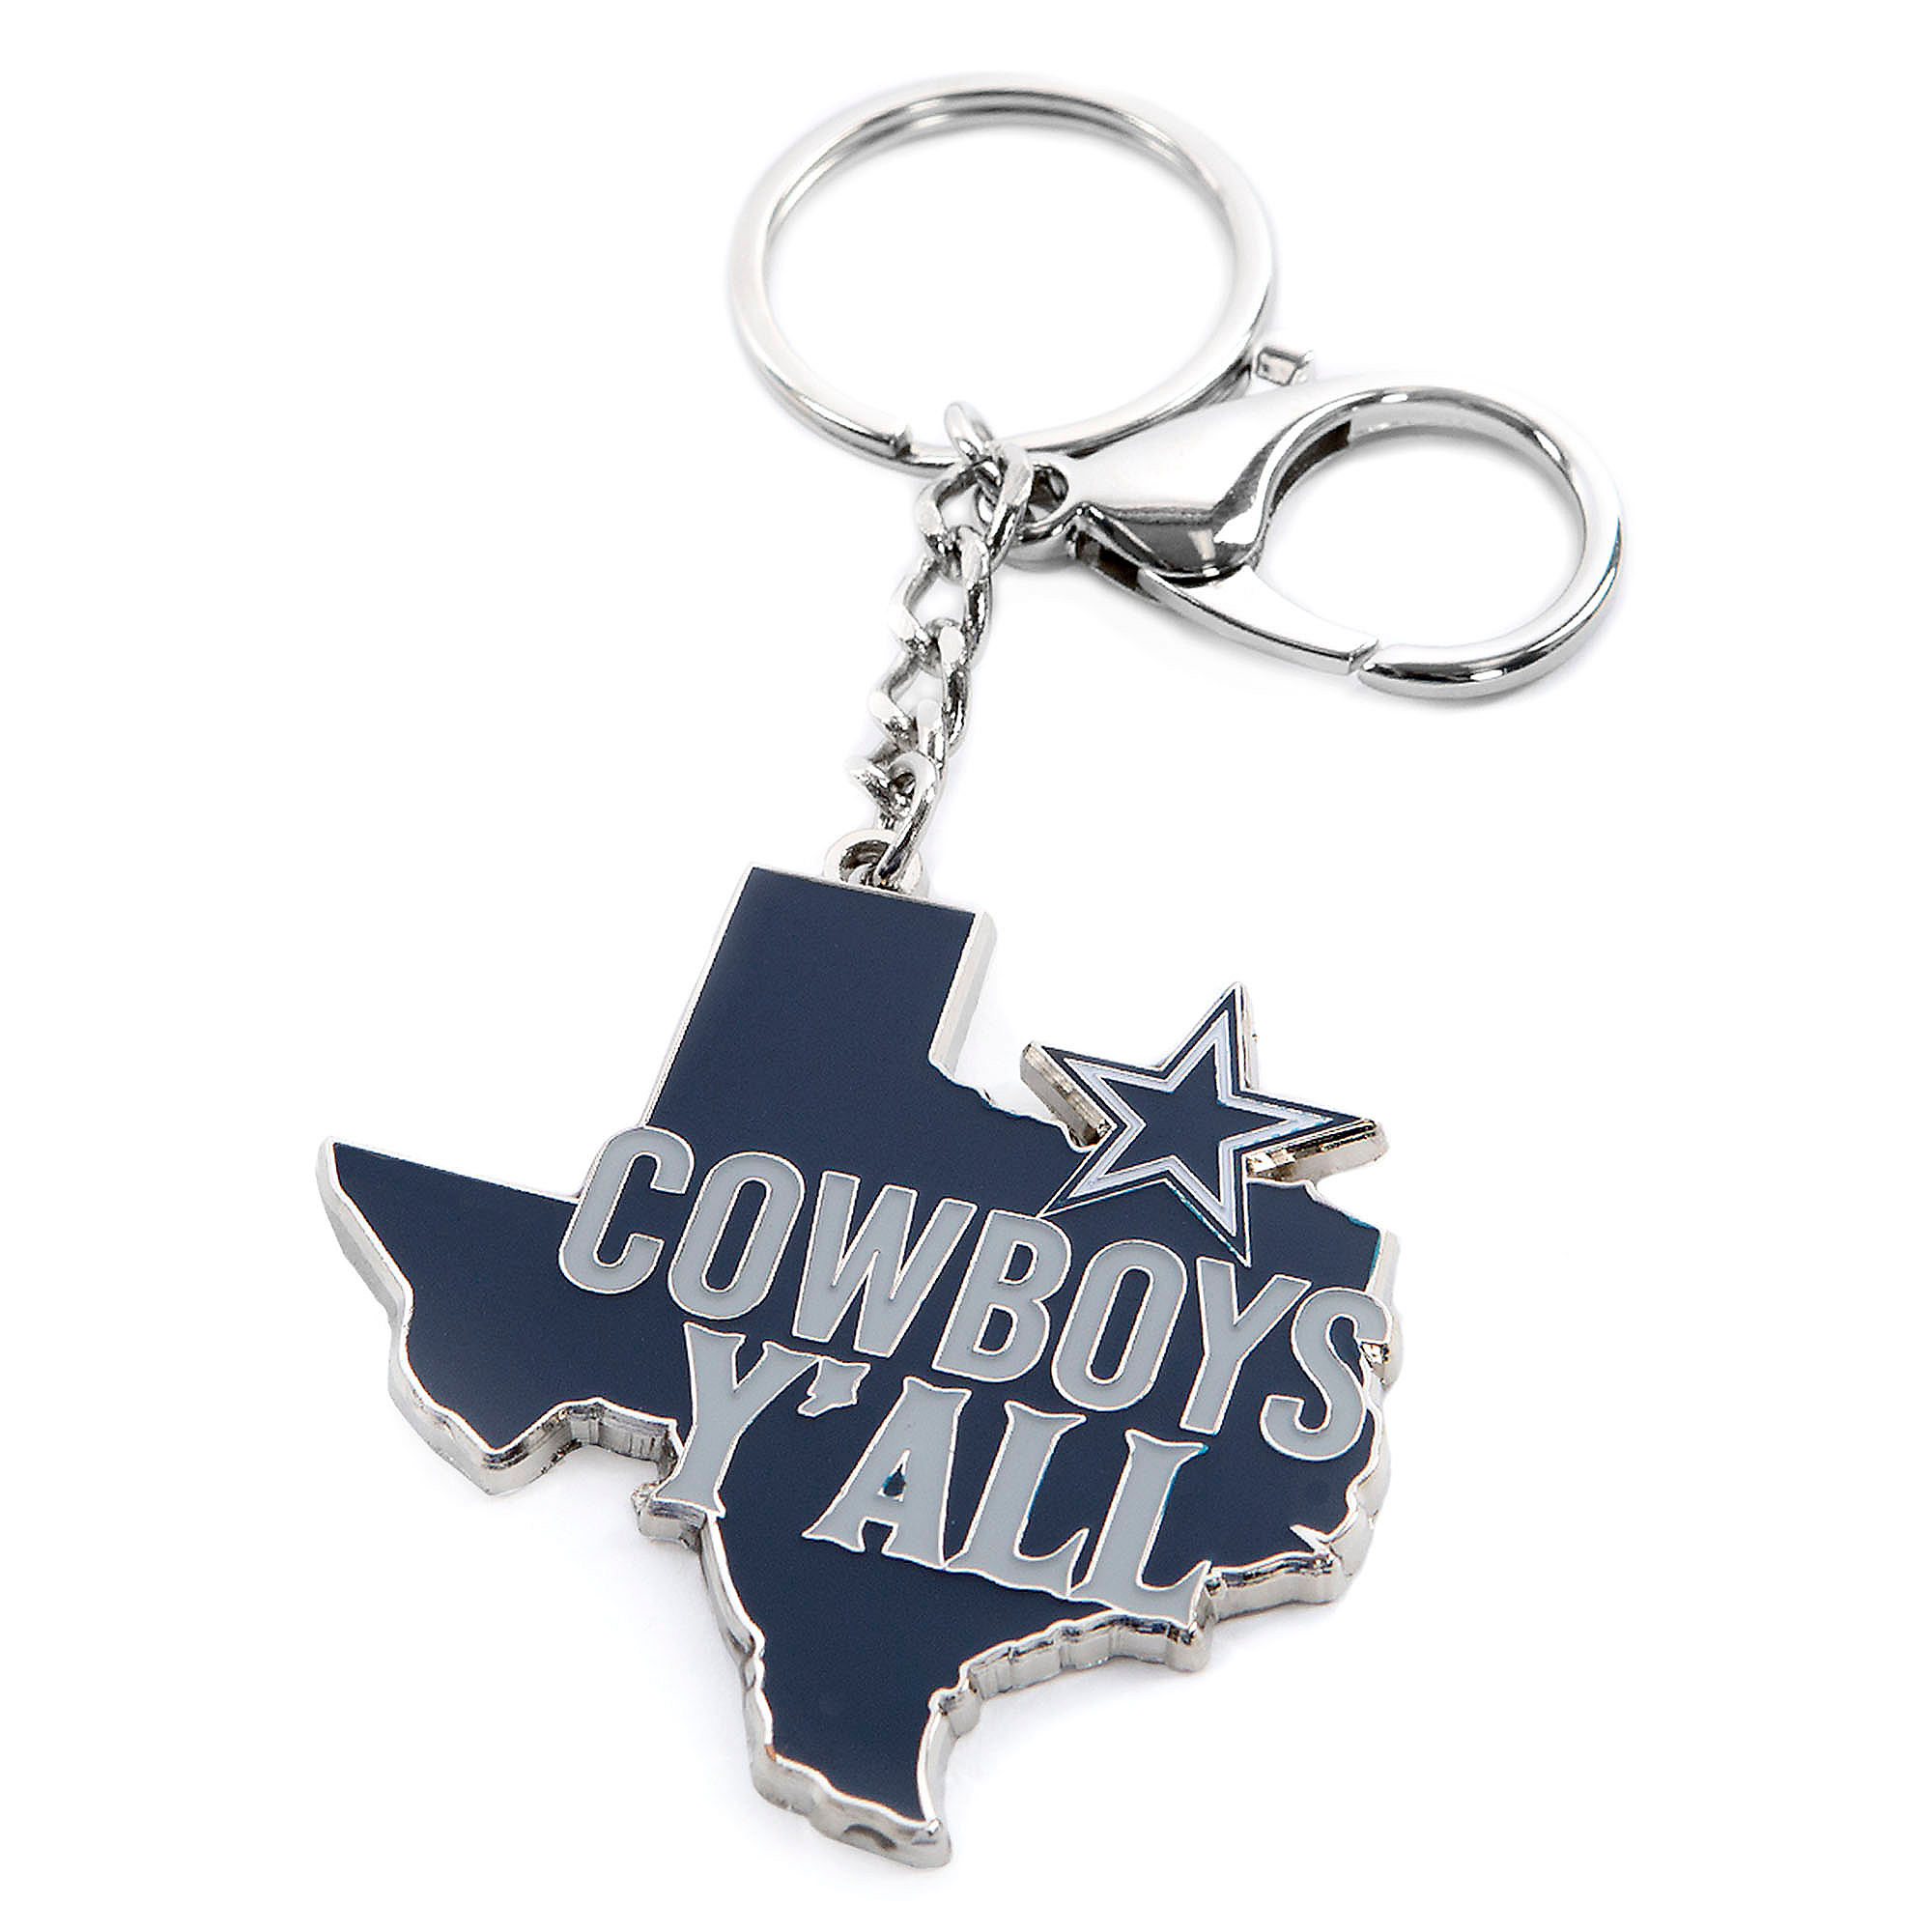 Dallas Cowboys Cowboys Y'all Keychain